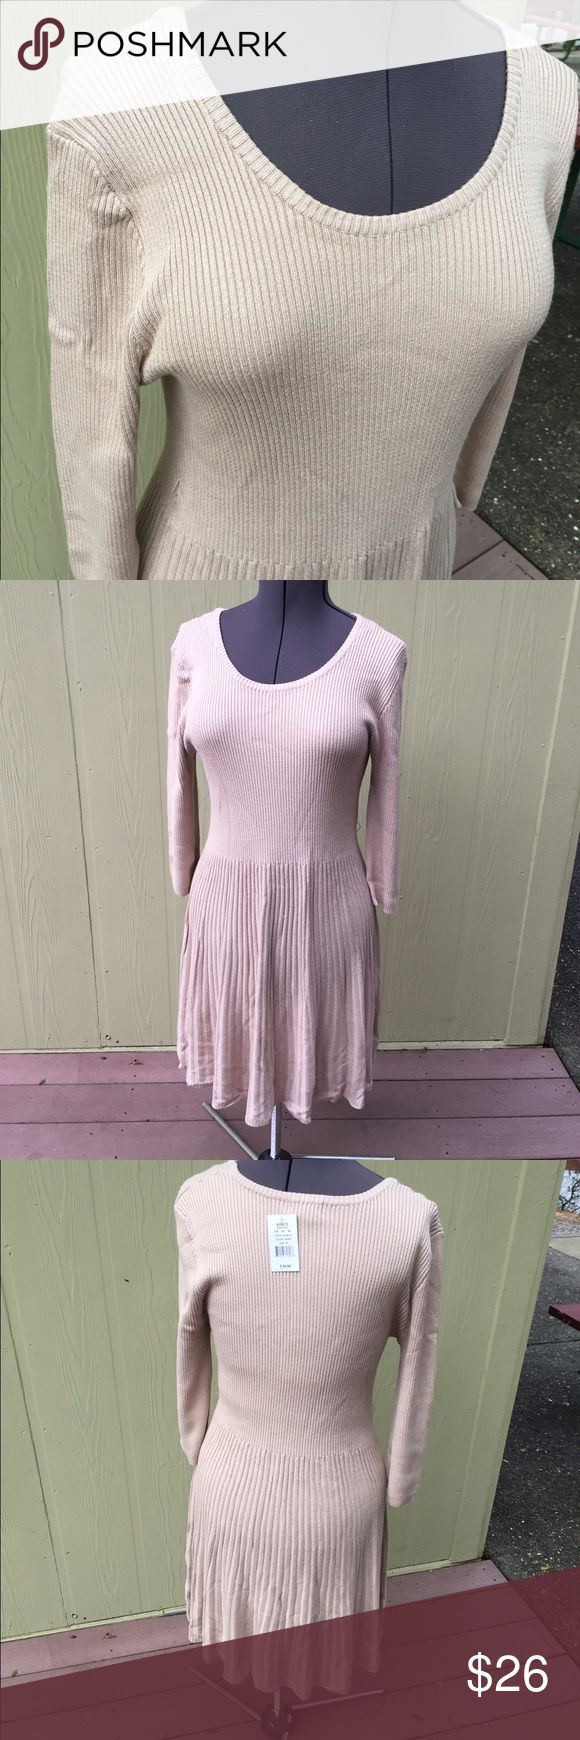 """Tan camel long sleeve scoop neck sweater dress 2X Tan camel long sleeve scoop neck sweater dress, juniors size 2X measures 40"""" bust, 38"""" waist, 20"""" skirt length. 3/4 sleeves measure 20"""". Brand new with tags! Super soft stretch material. Pair with boots and a scarf! Say What? Dresses Long Sleeve"""